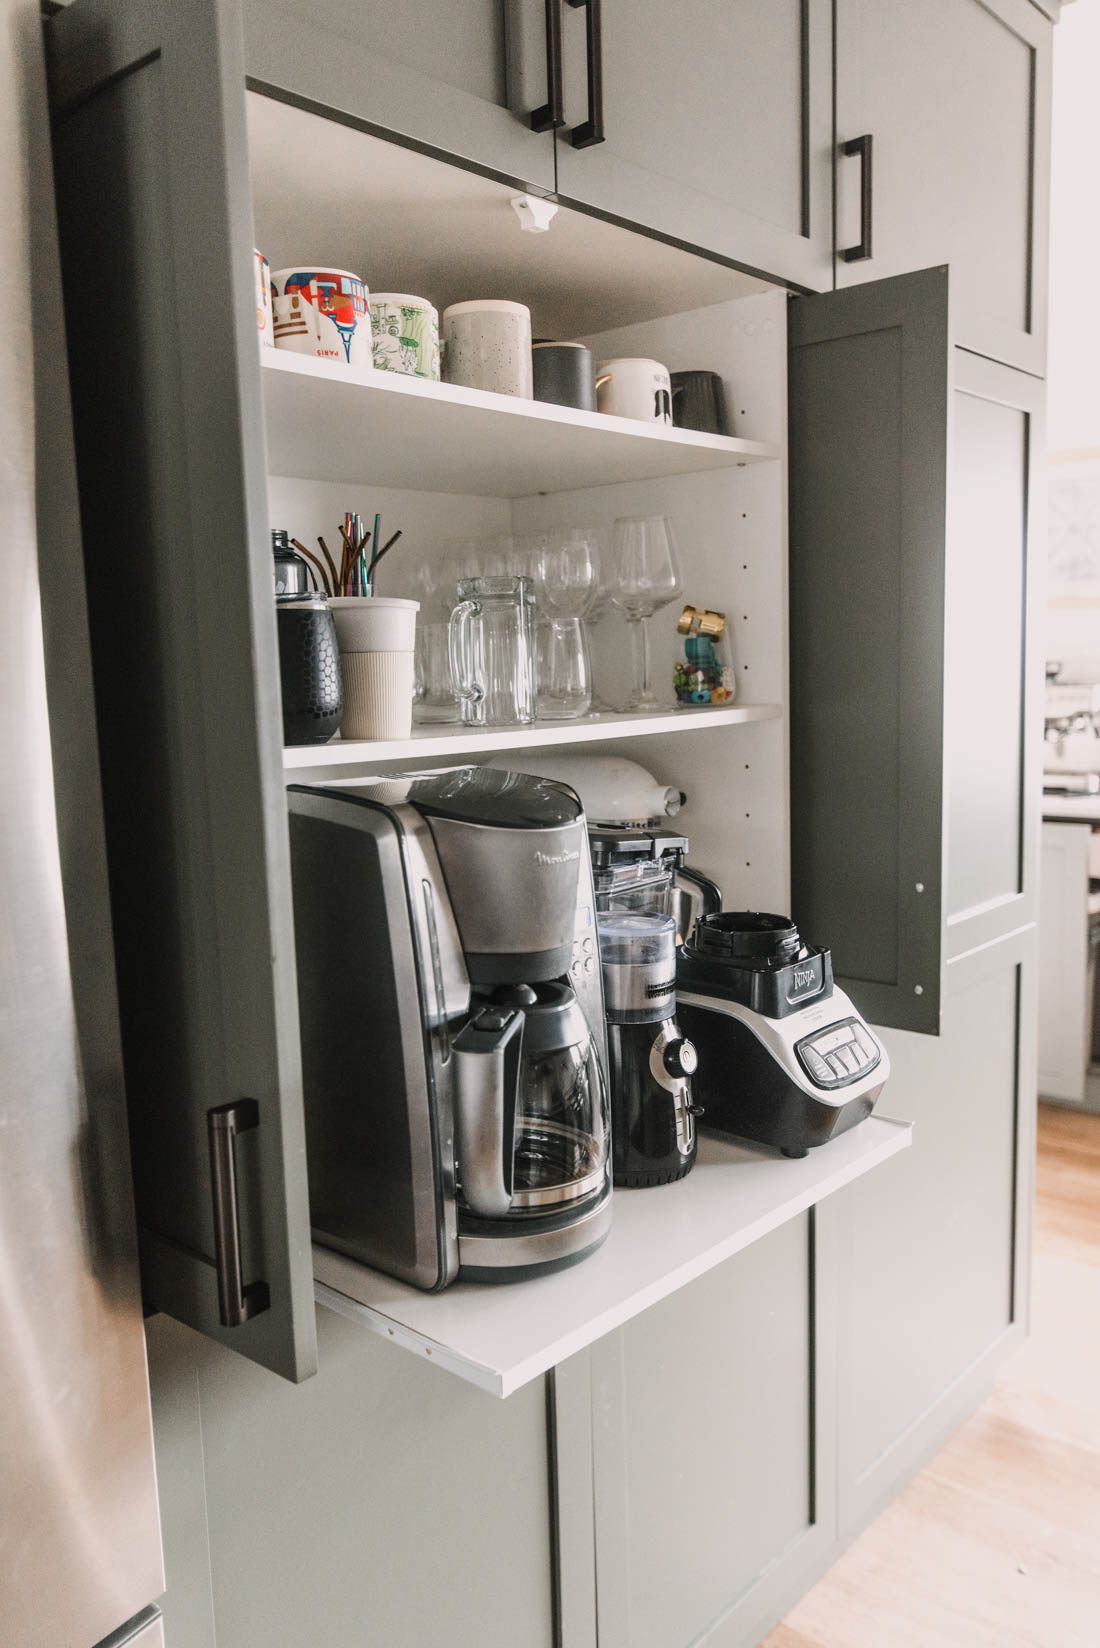 DIY Appliance Garage with Pull Out Shelf